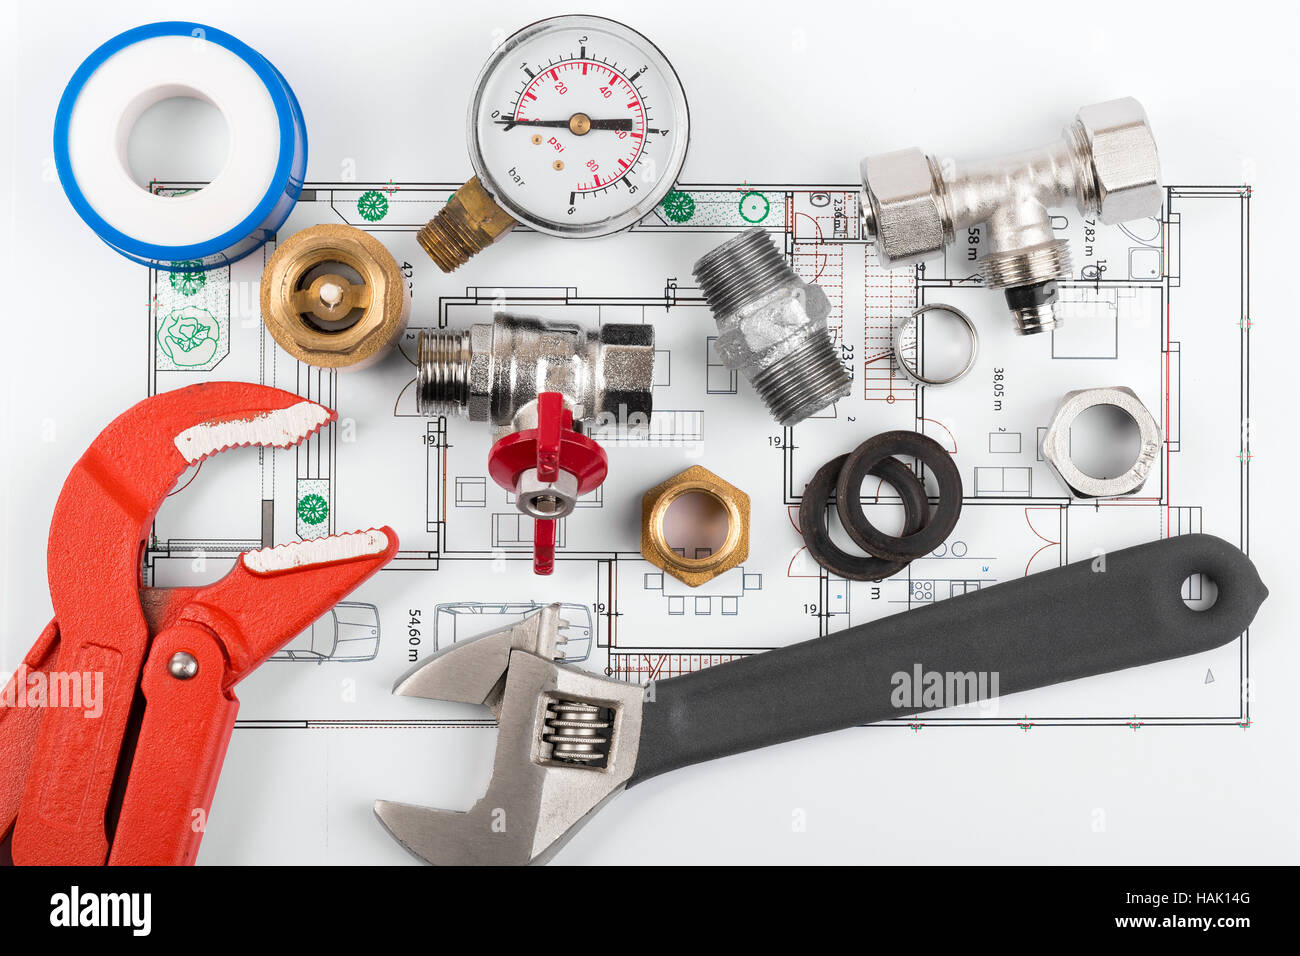 Plumbing Tools High Resolution Stock Photography And Images Alamy